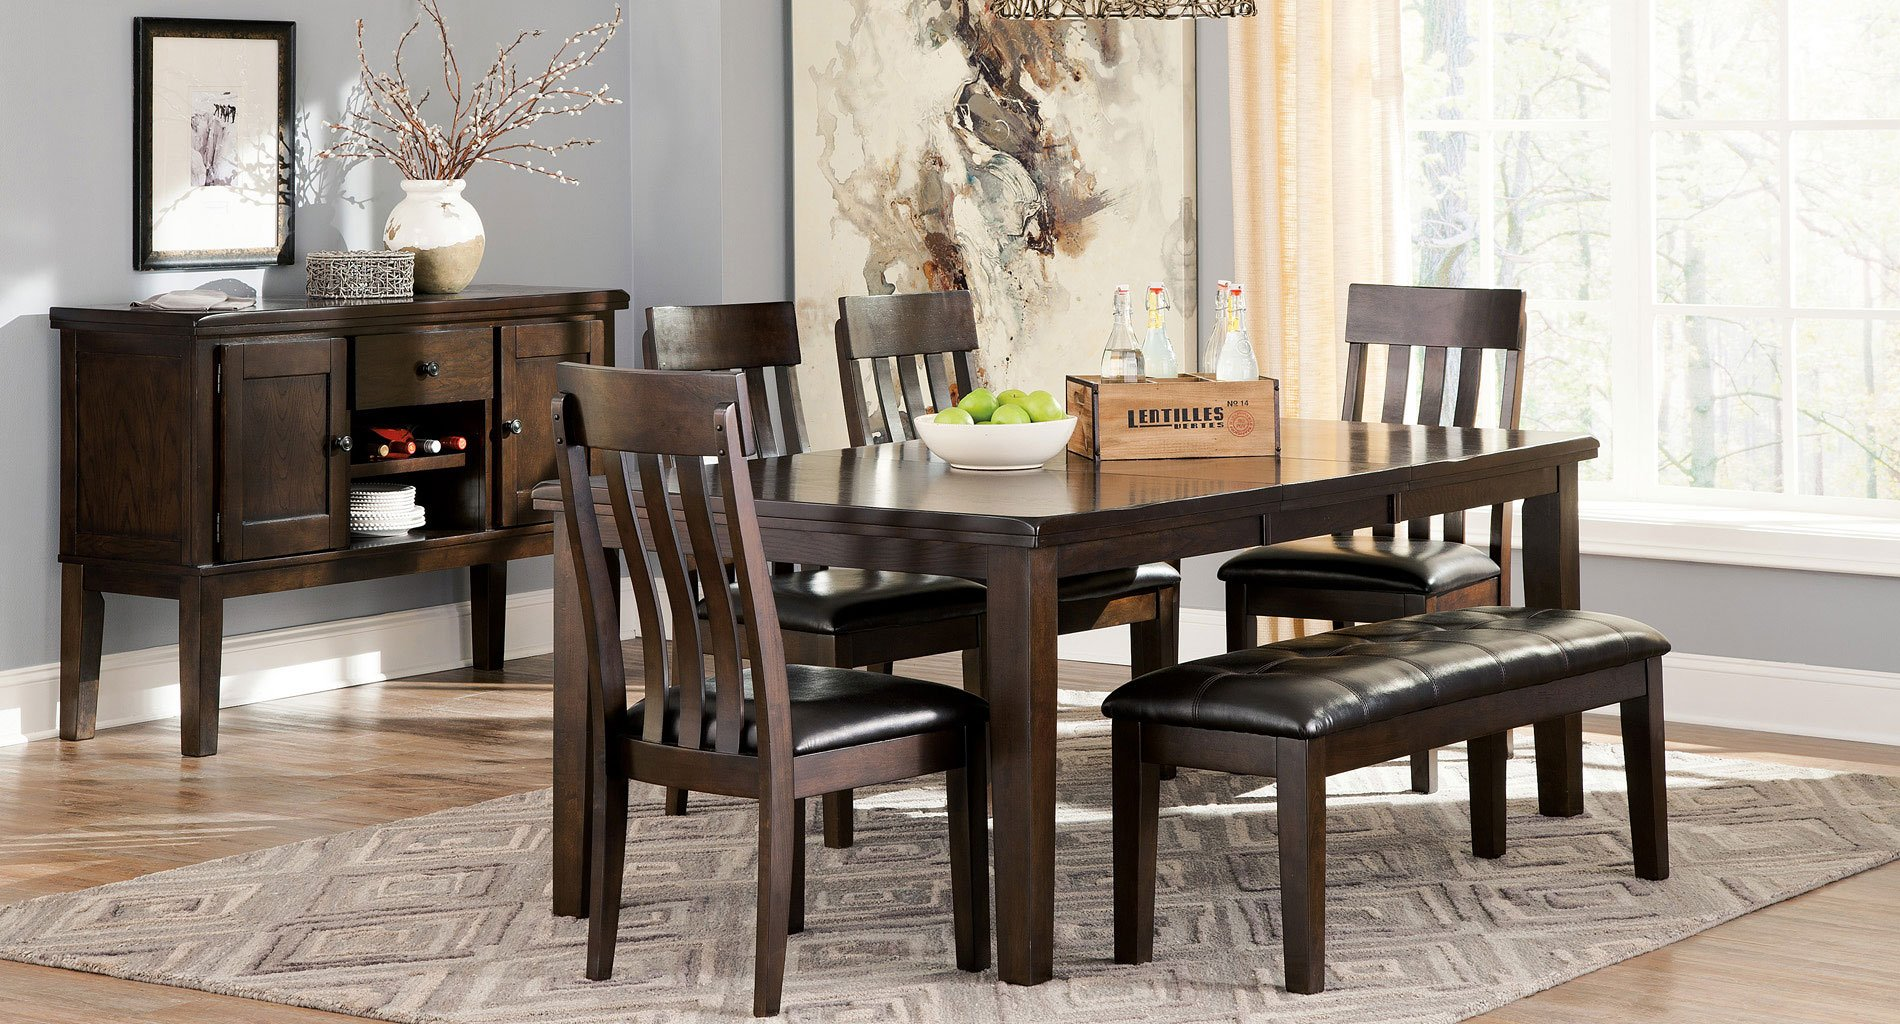 Superb img of Dining Room Set w/ Bench Formal Dining Sets Dining Room  with #919D2E color and 1900x1024 pixels